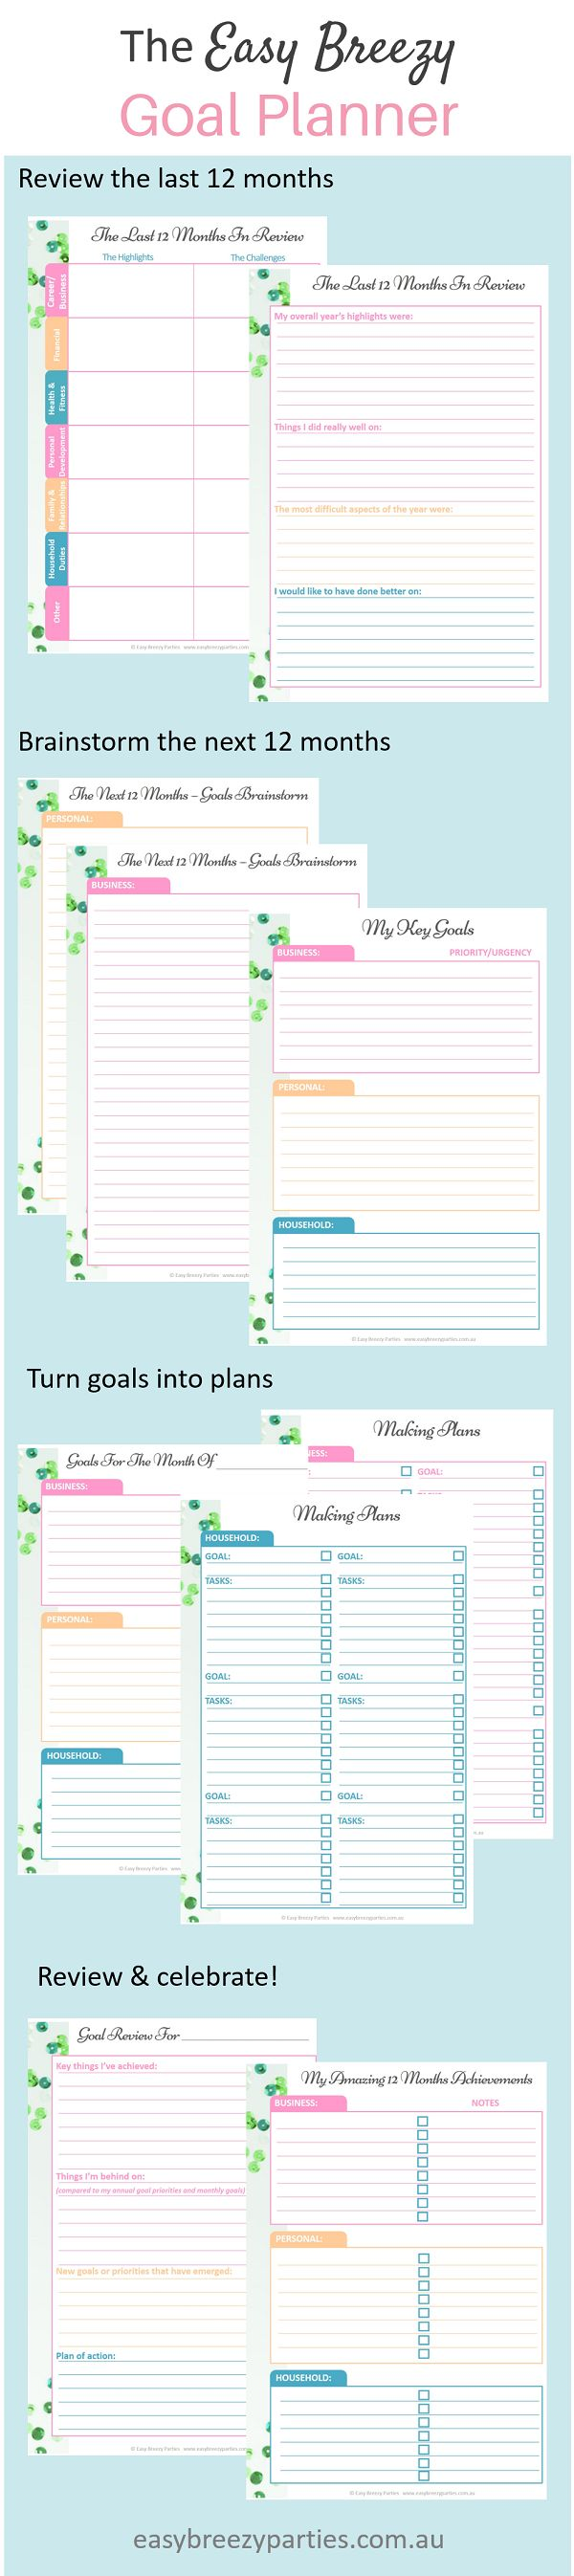 A FREE downloadable goal planner that's pretty and practical - brainstorm, set goals, turn them into action plans, and review your progress. Download from http://www.easybreezyparties.com.au/party-inspiration-and-ideas/item/35-free-downloadable-goal-planner.html #goalplanning #easybreezylife